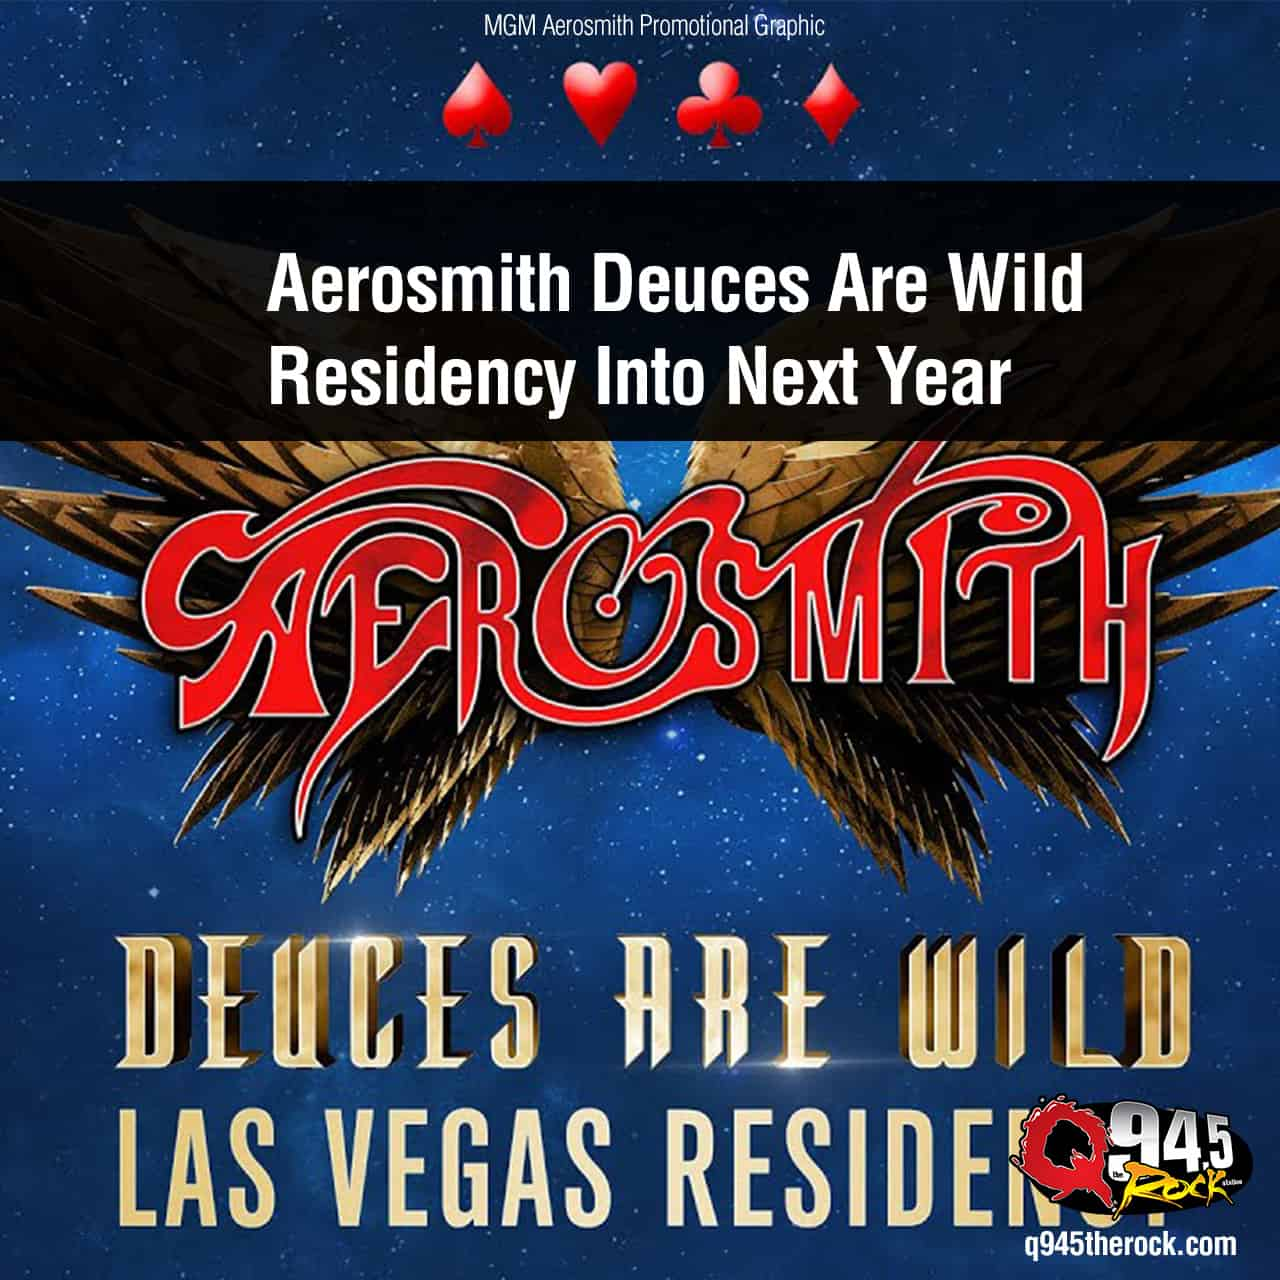 Aerosmith Deuces Are Wild Residency Into Next Year